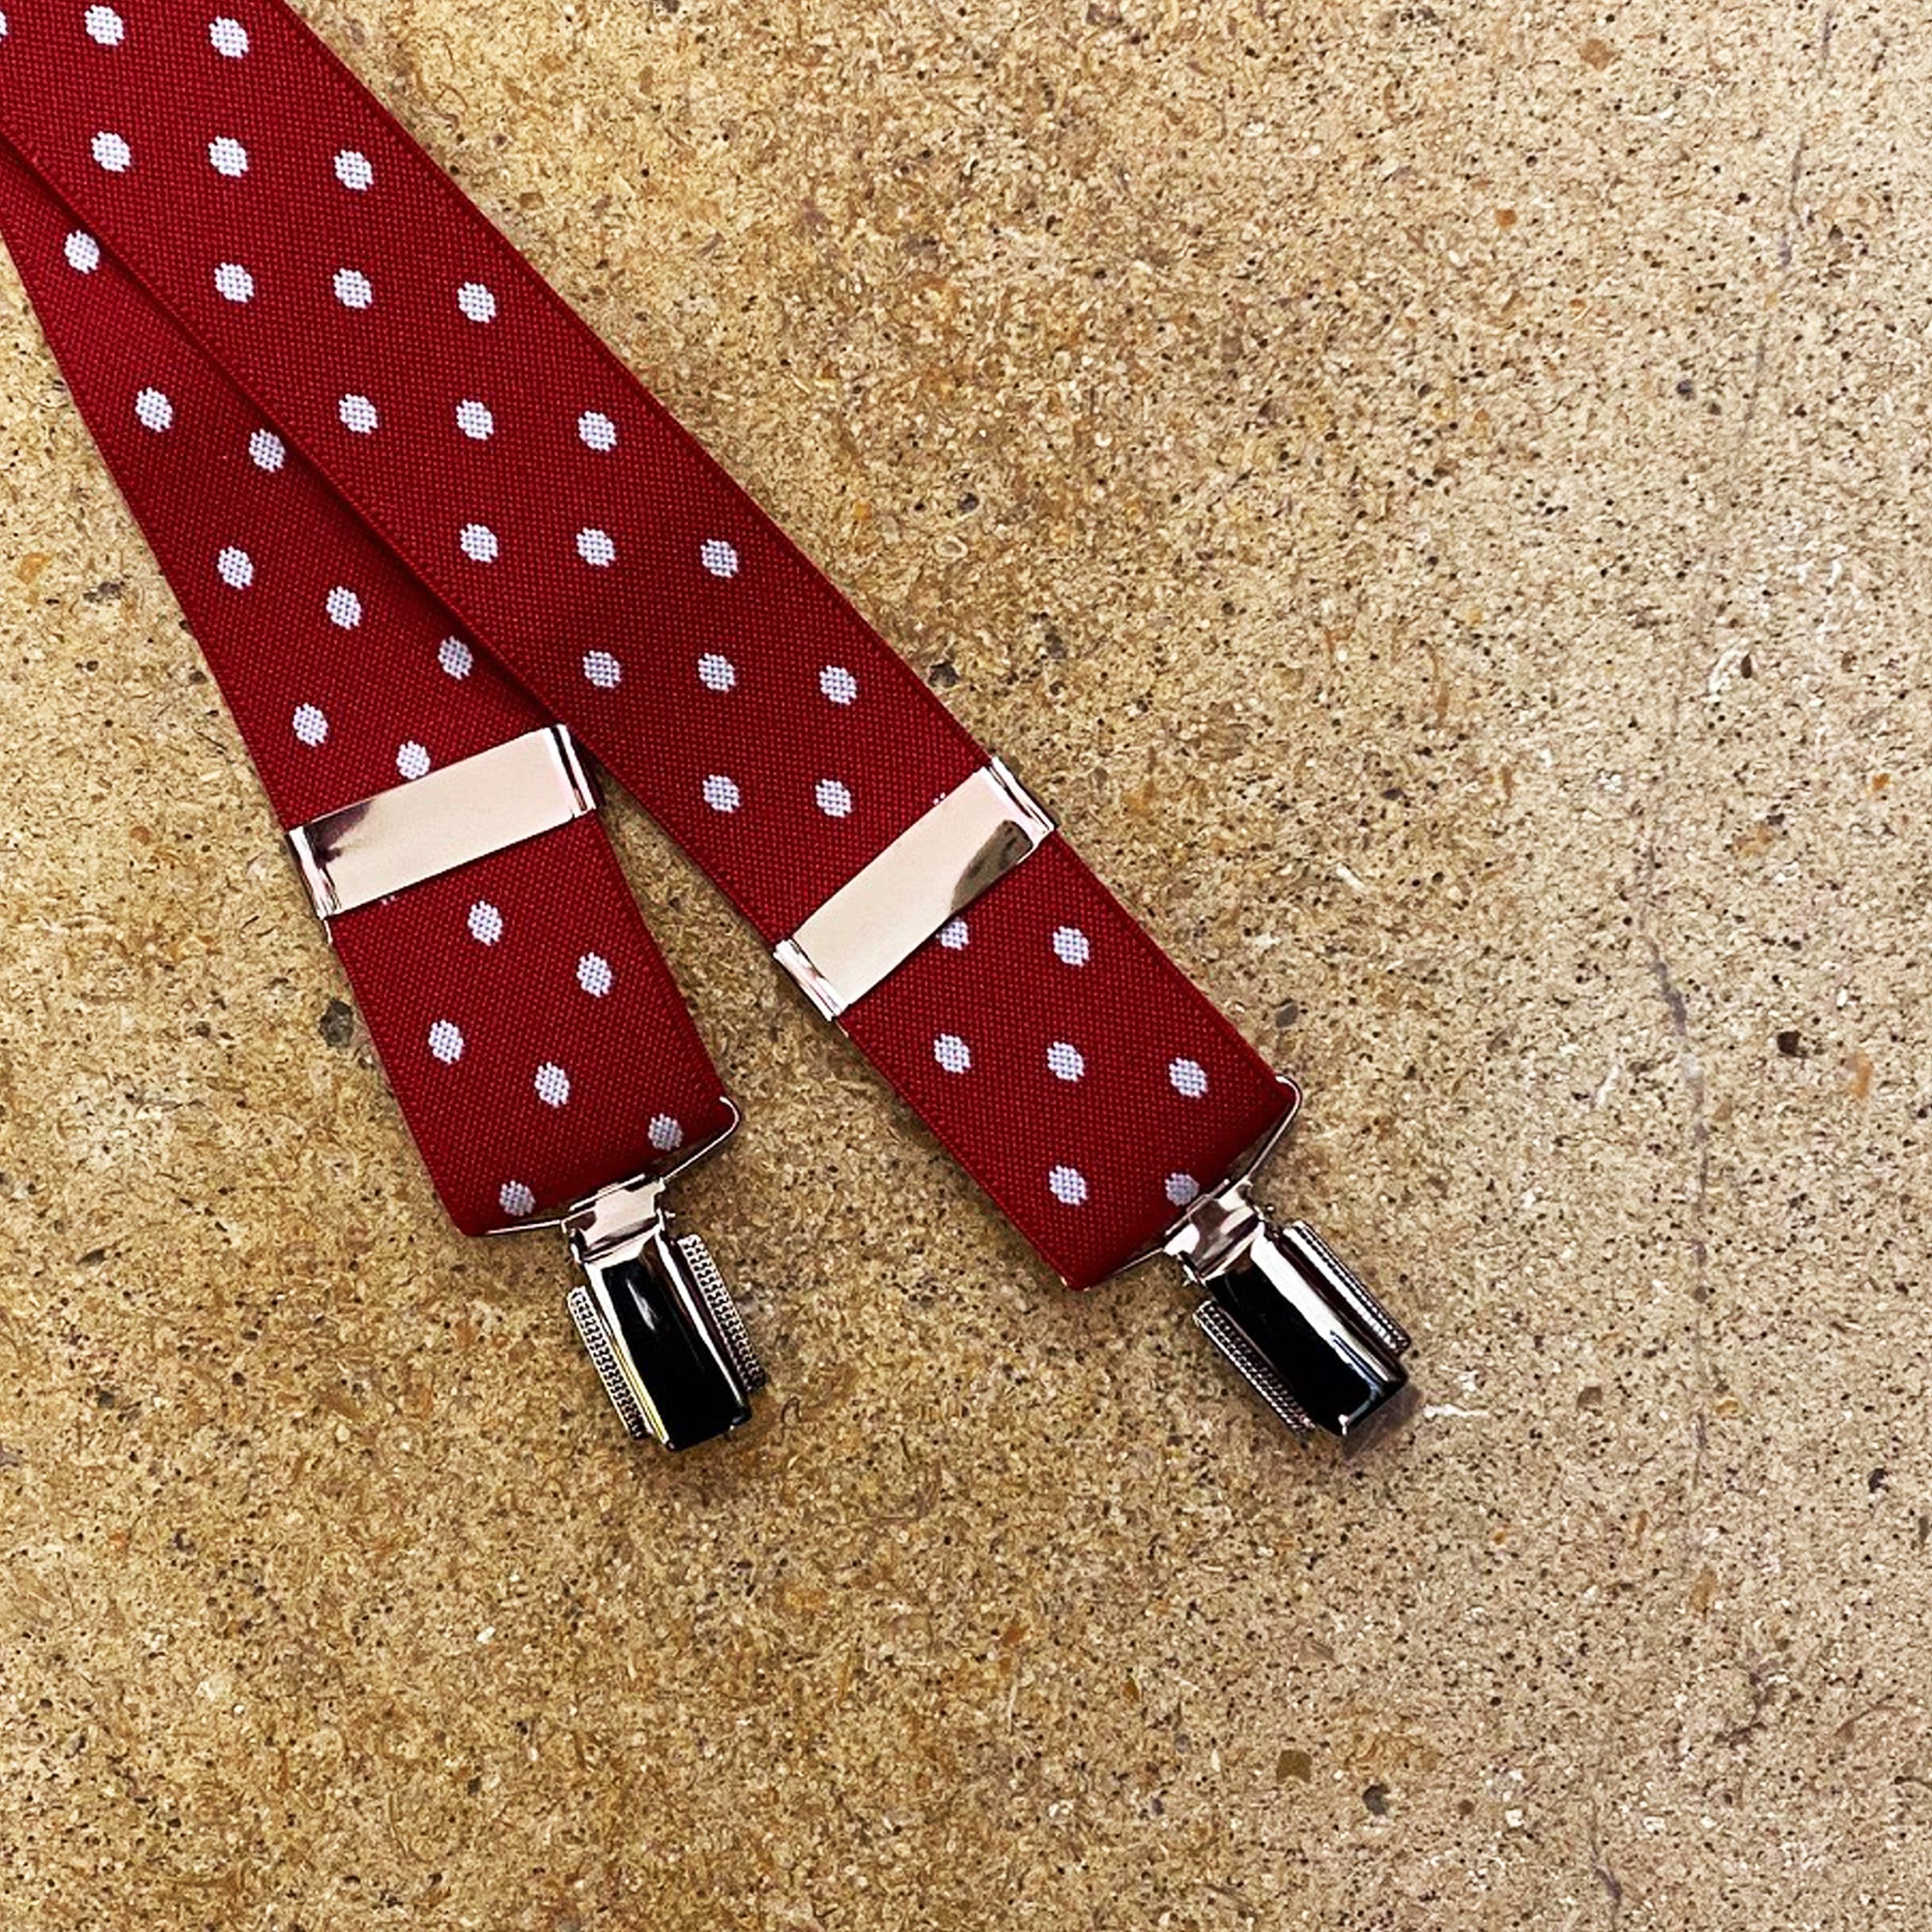 Hunt & Holditch 1 3/8 Braces with Nickel Feather Clips for Men in Red